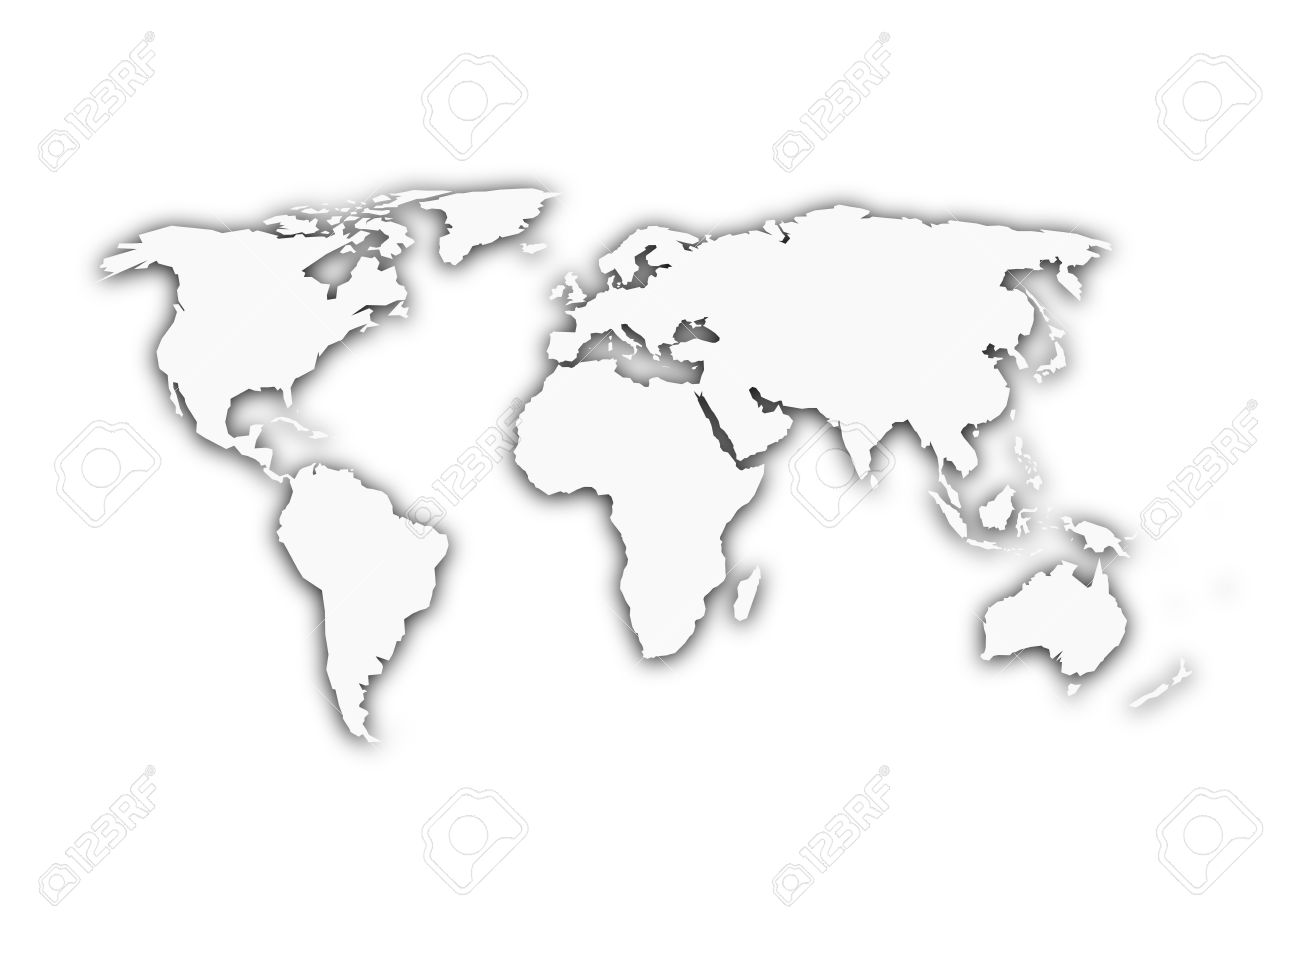 White world map with shadow silhouette. Looks like map cut from paper. Vector illustration. - 50506421